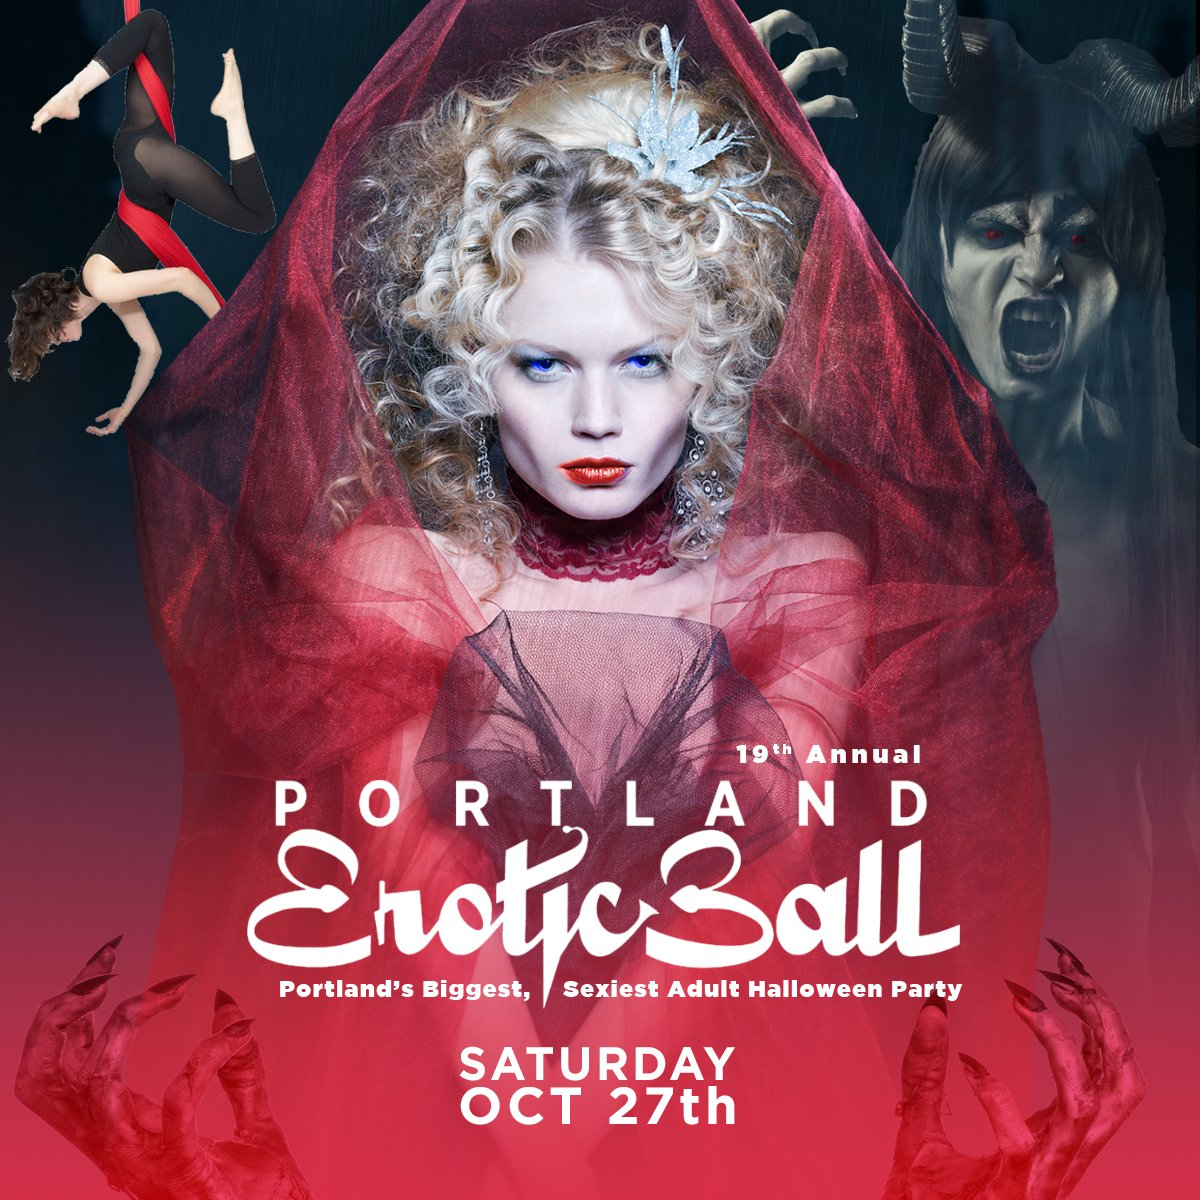 Portland's naughtiest Halloween party features a Costume Contest, 3 Floors, Fetish Demos, music by Soul Vaccination, Burlesque, @SashaScarlett & More!